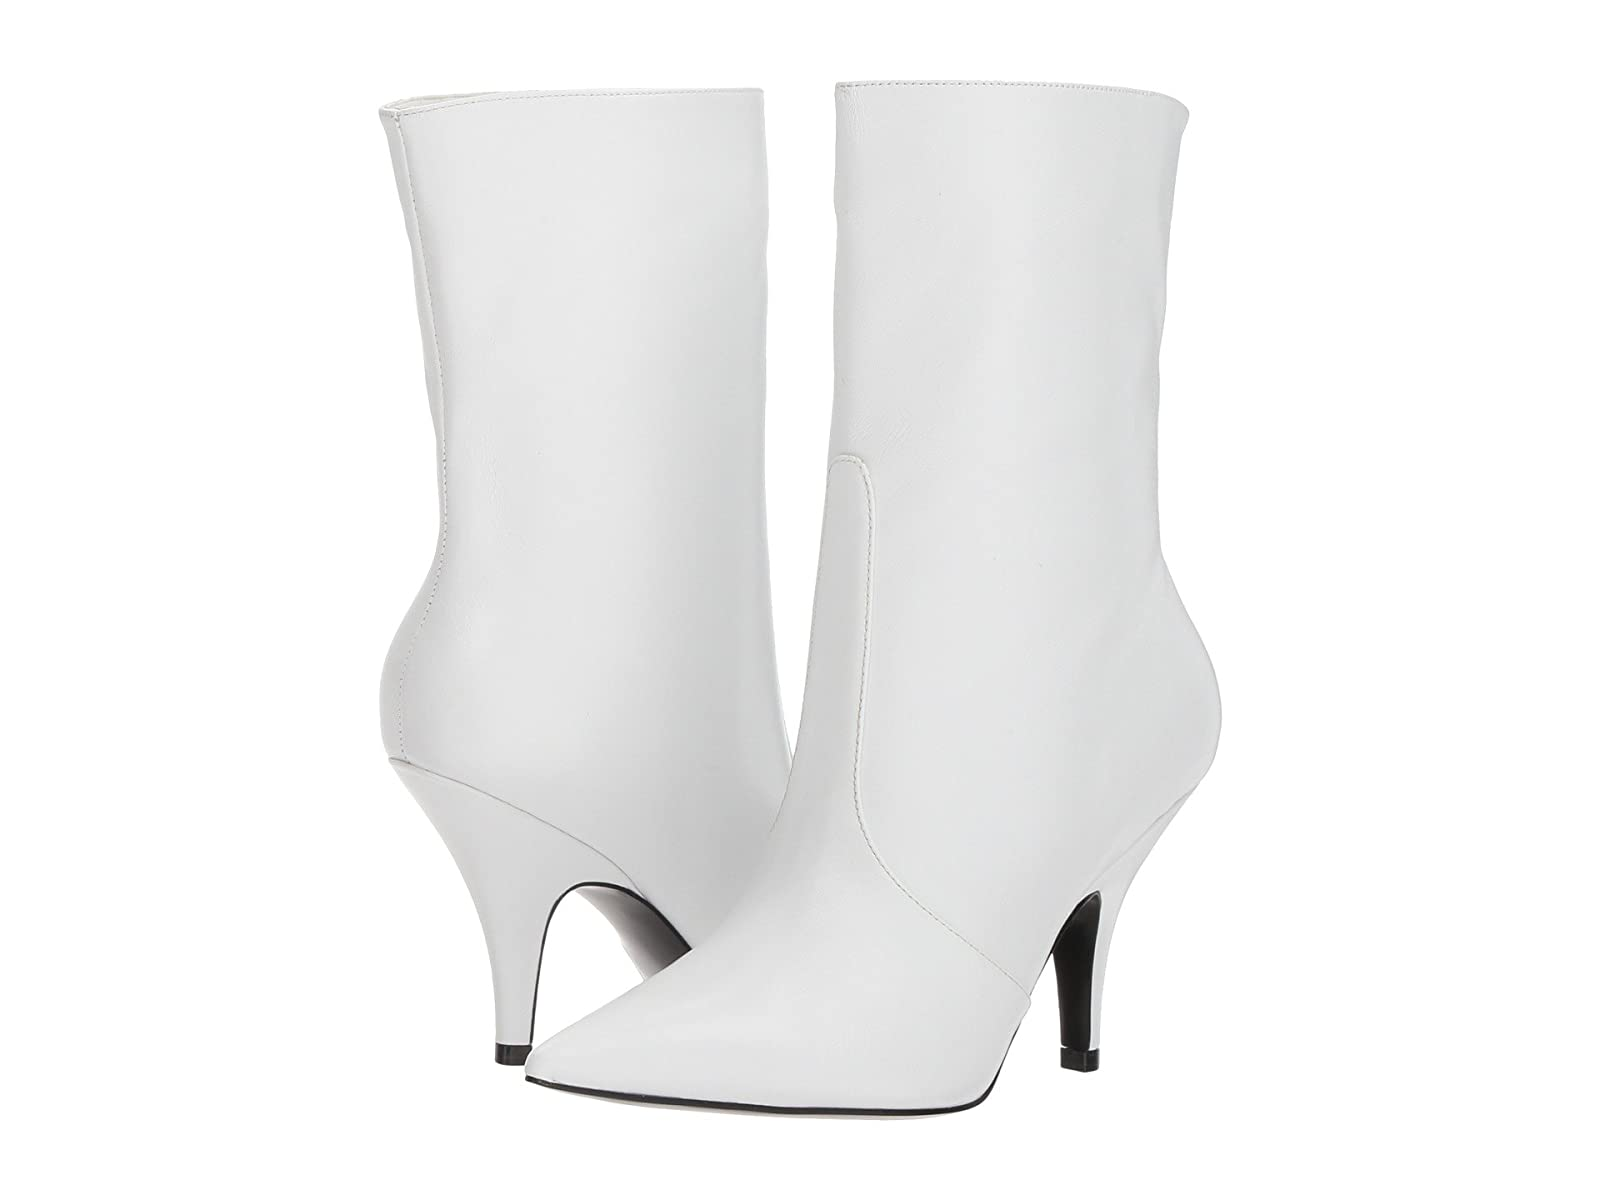 KENDALL + KYLIE Calie 3Affordable and distinctive shoes